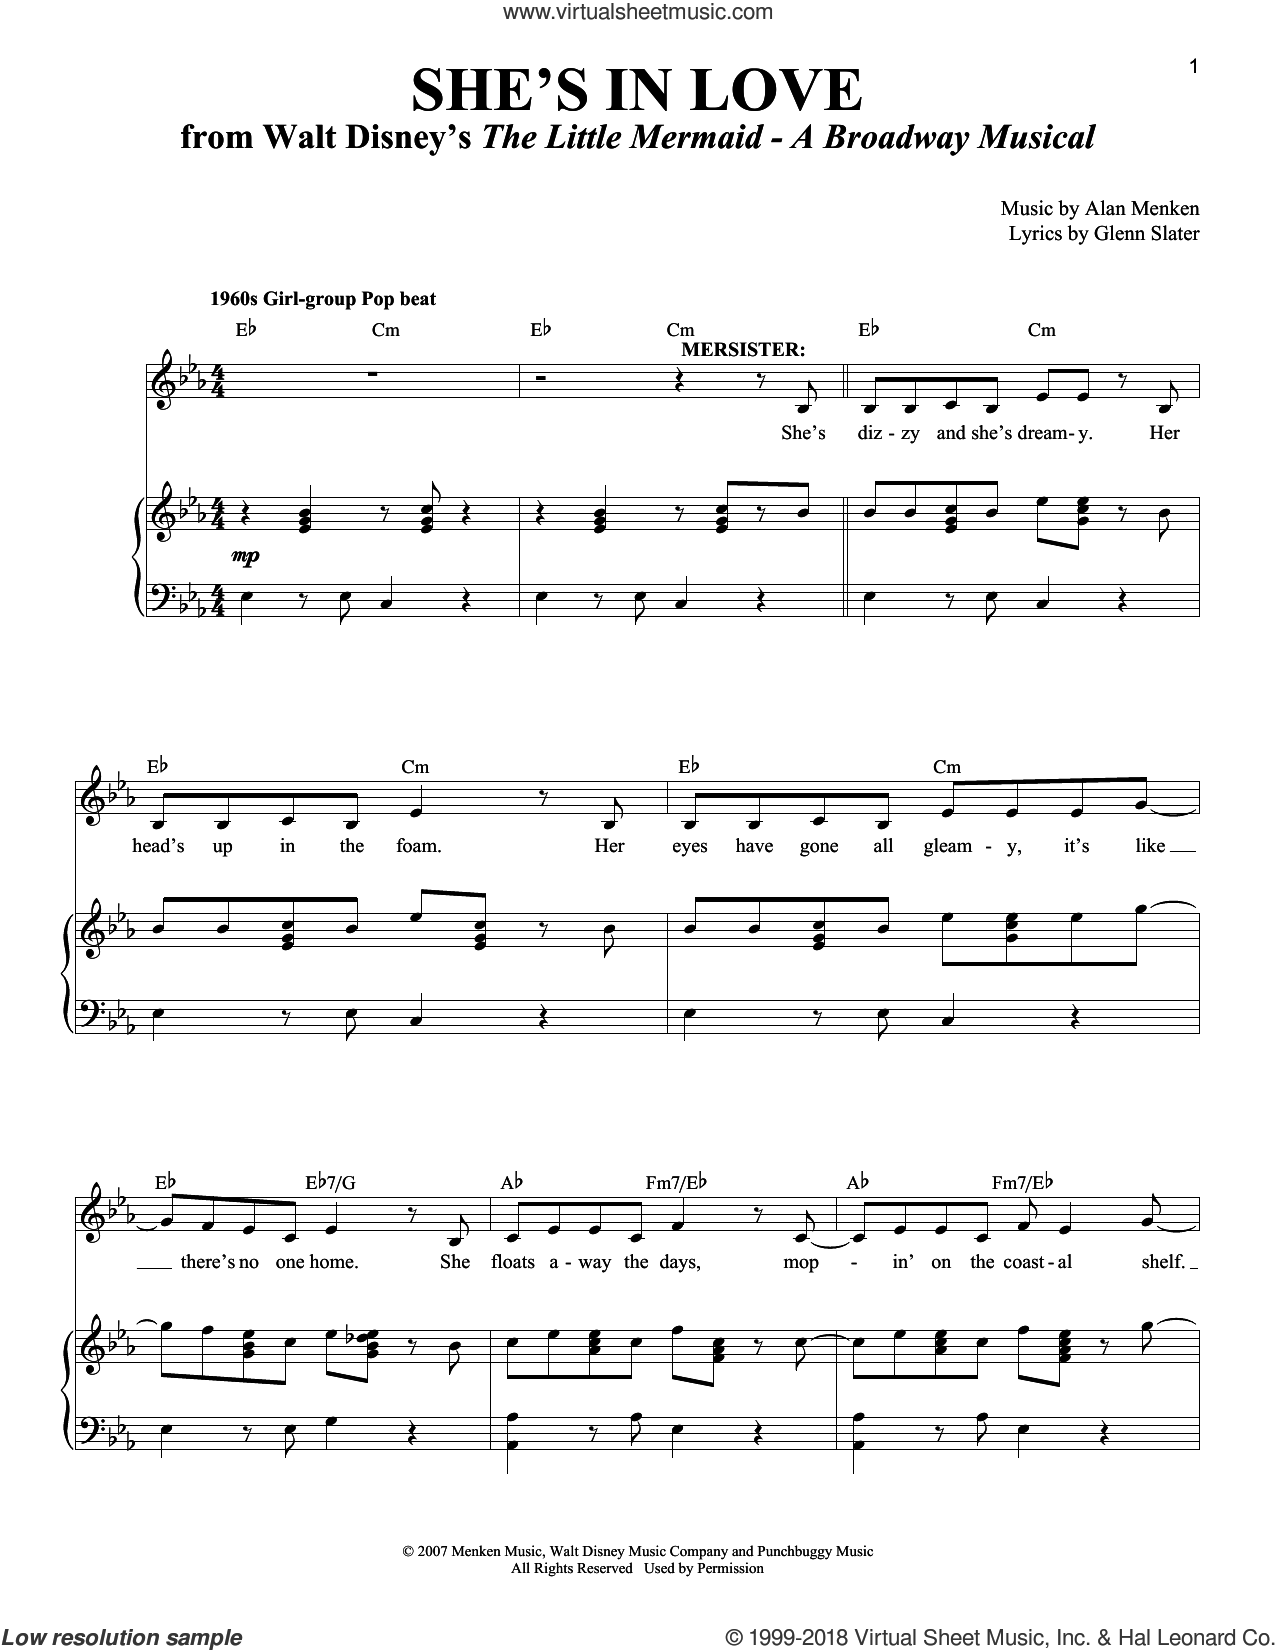 She's In Love sheet music for voice and piano by Alan Menken and Glenn Slater, intermediate skill level